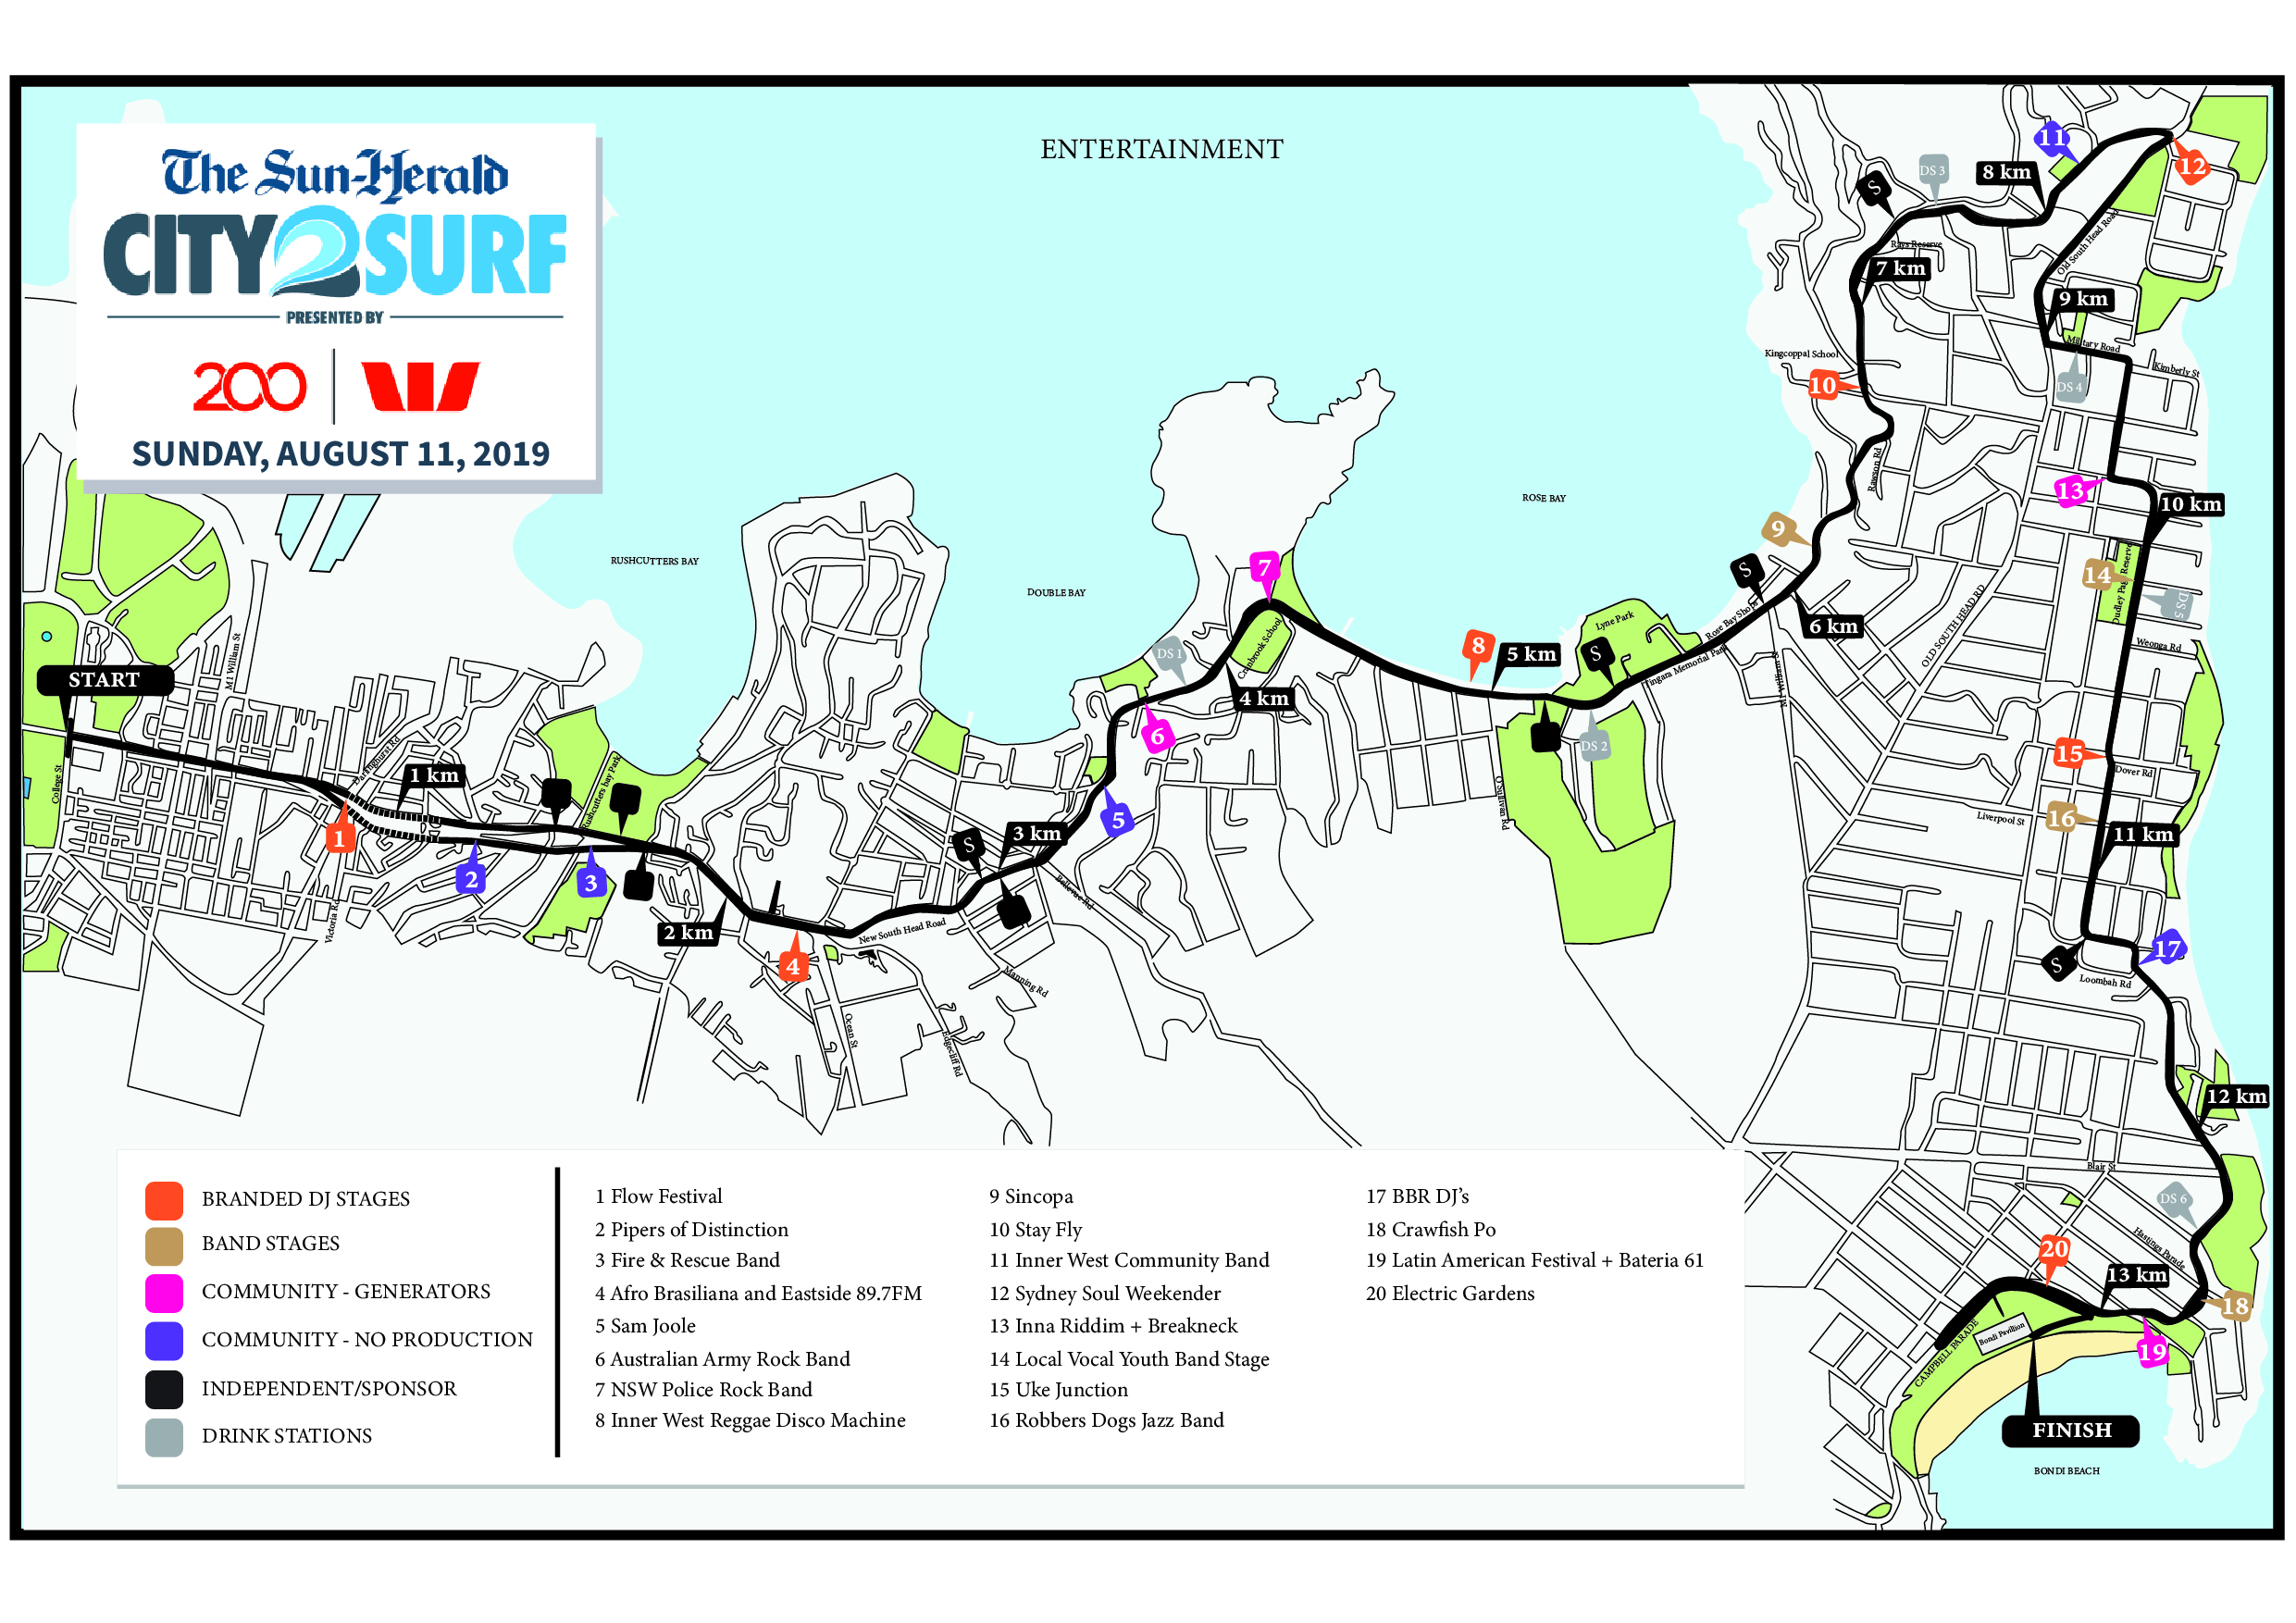 C2S19 - On Course Entertainment Map 23-7-19.jpg